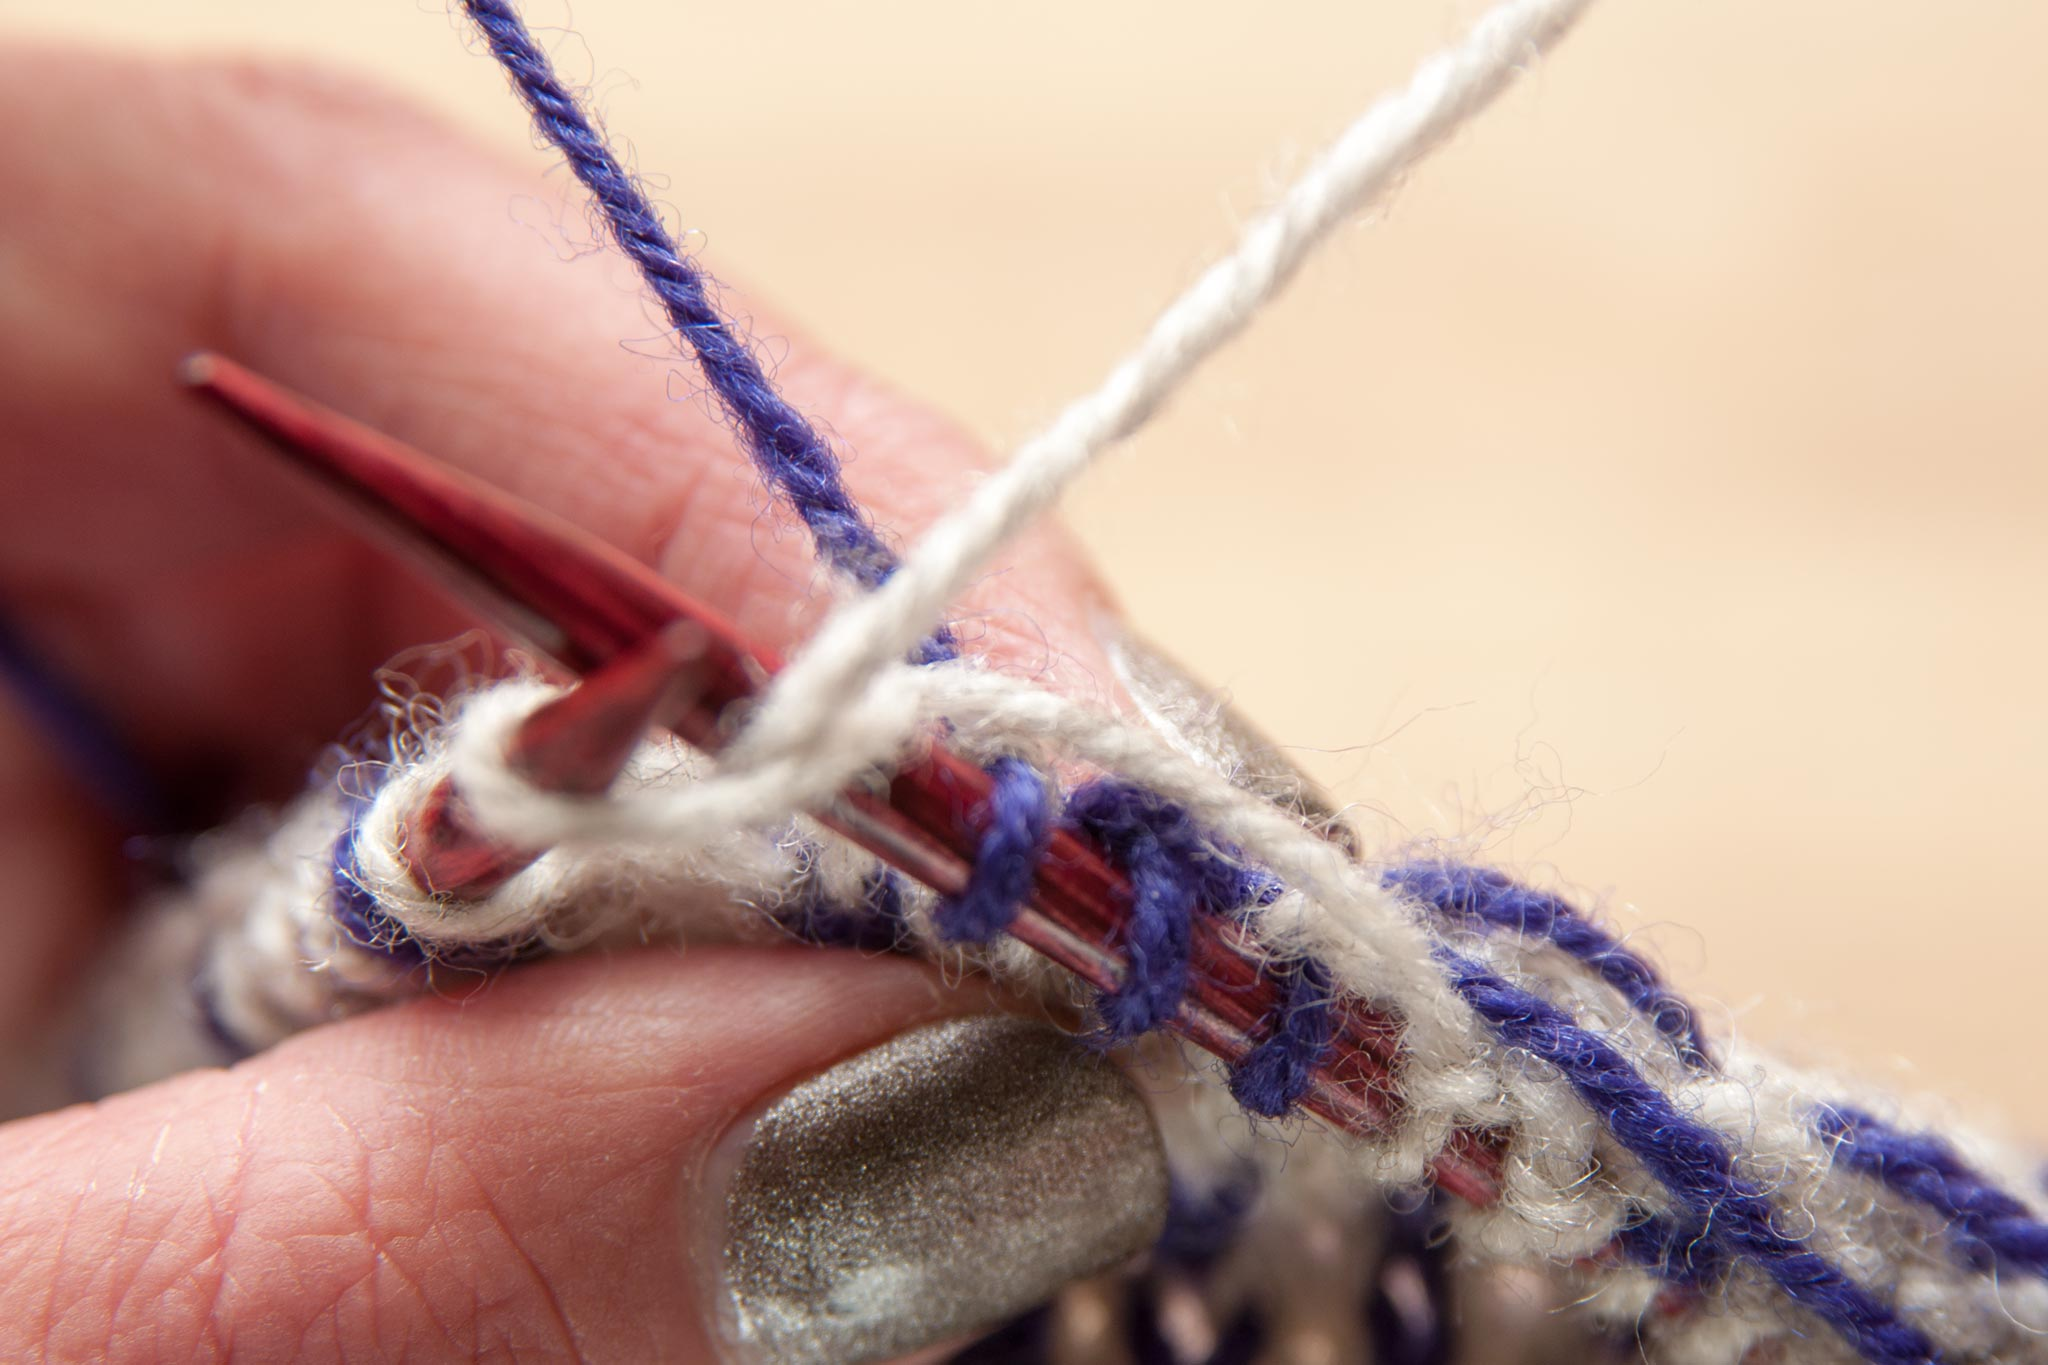 Spread out the stitches on the right needle before working the next stitch.